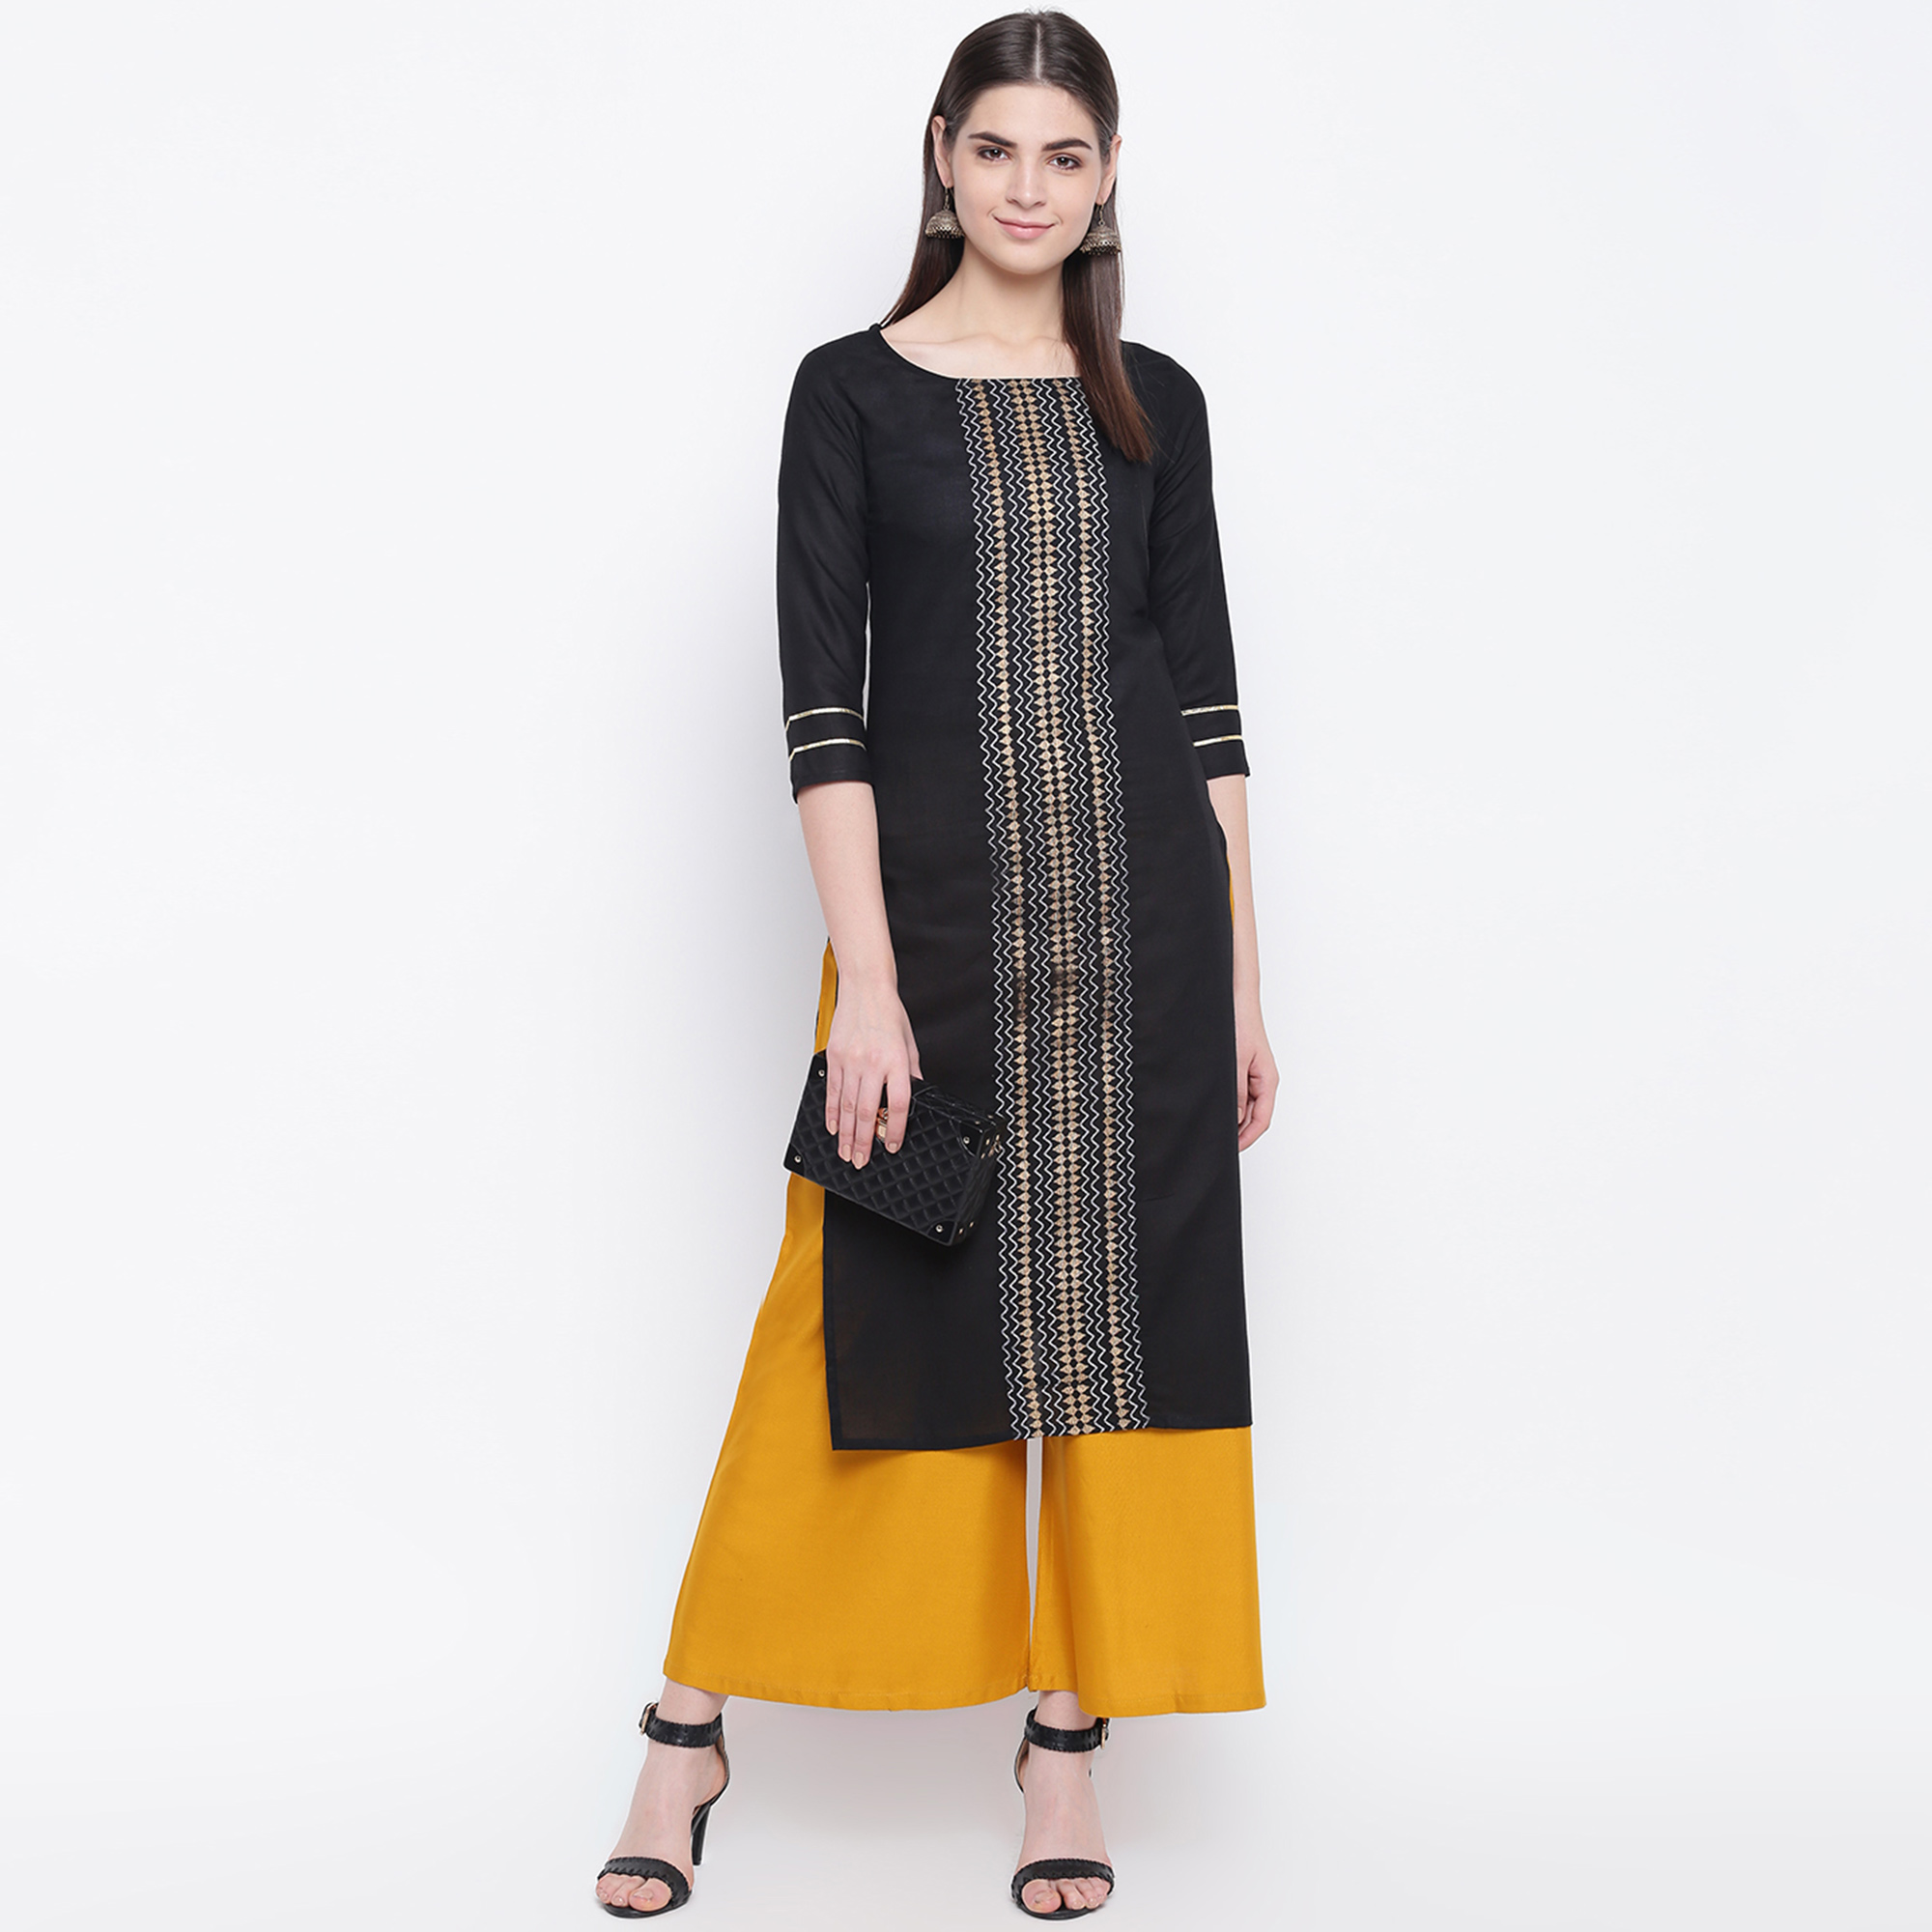 Engrossing Black Colored Casual Wear Printed Cotton Kurti